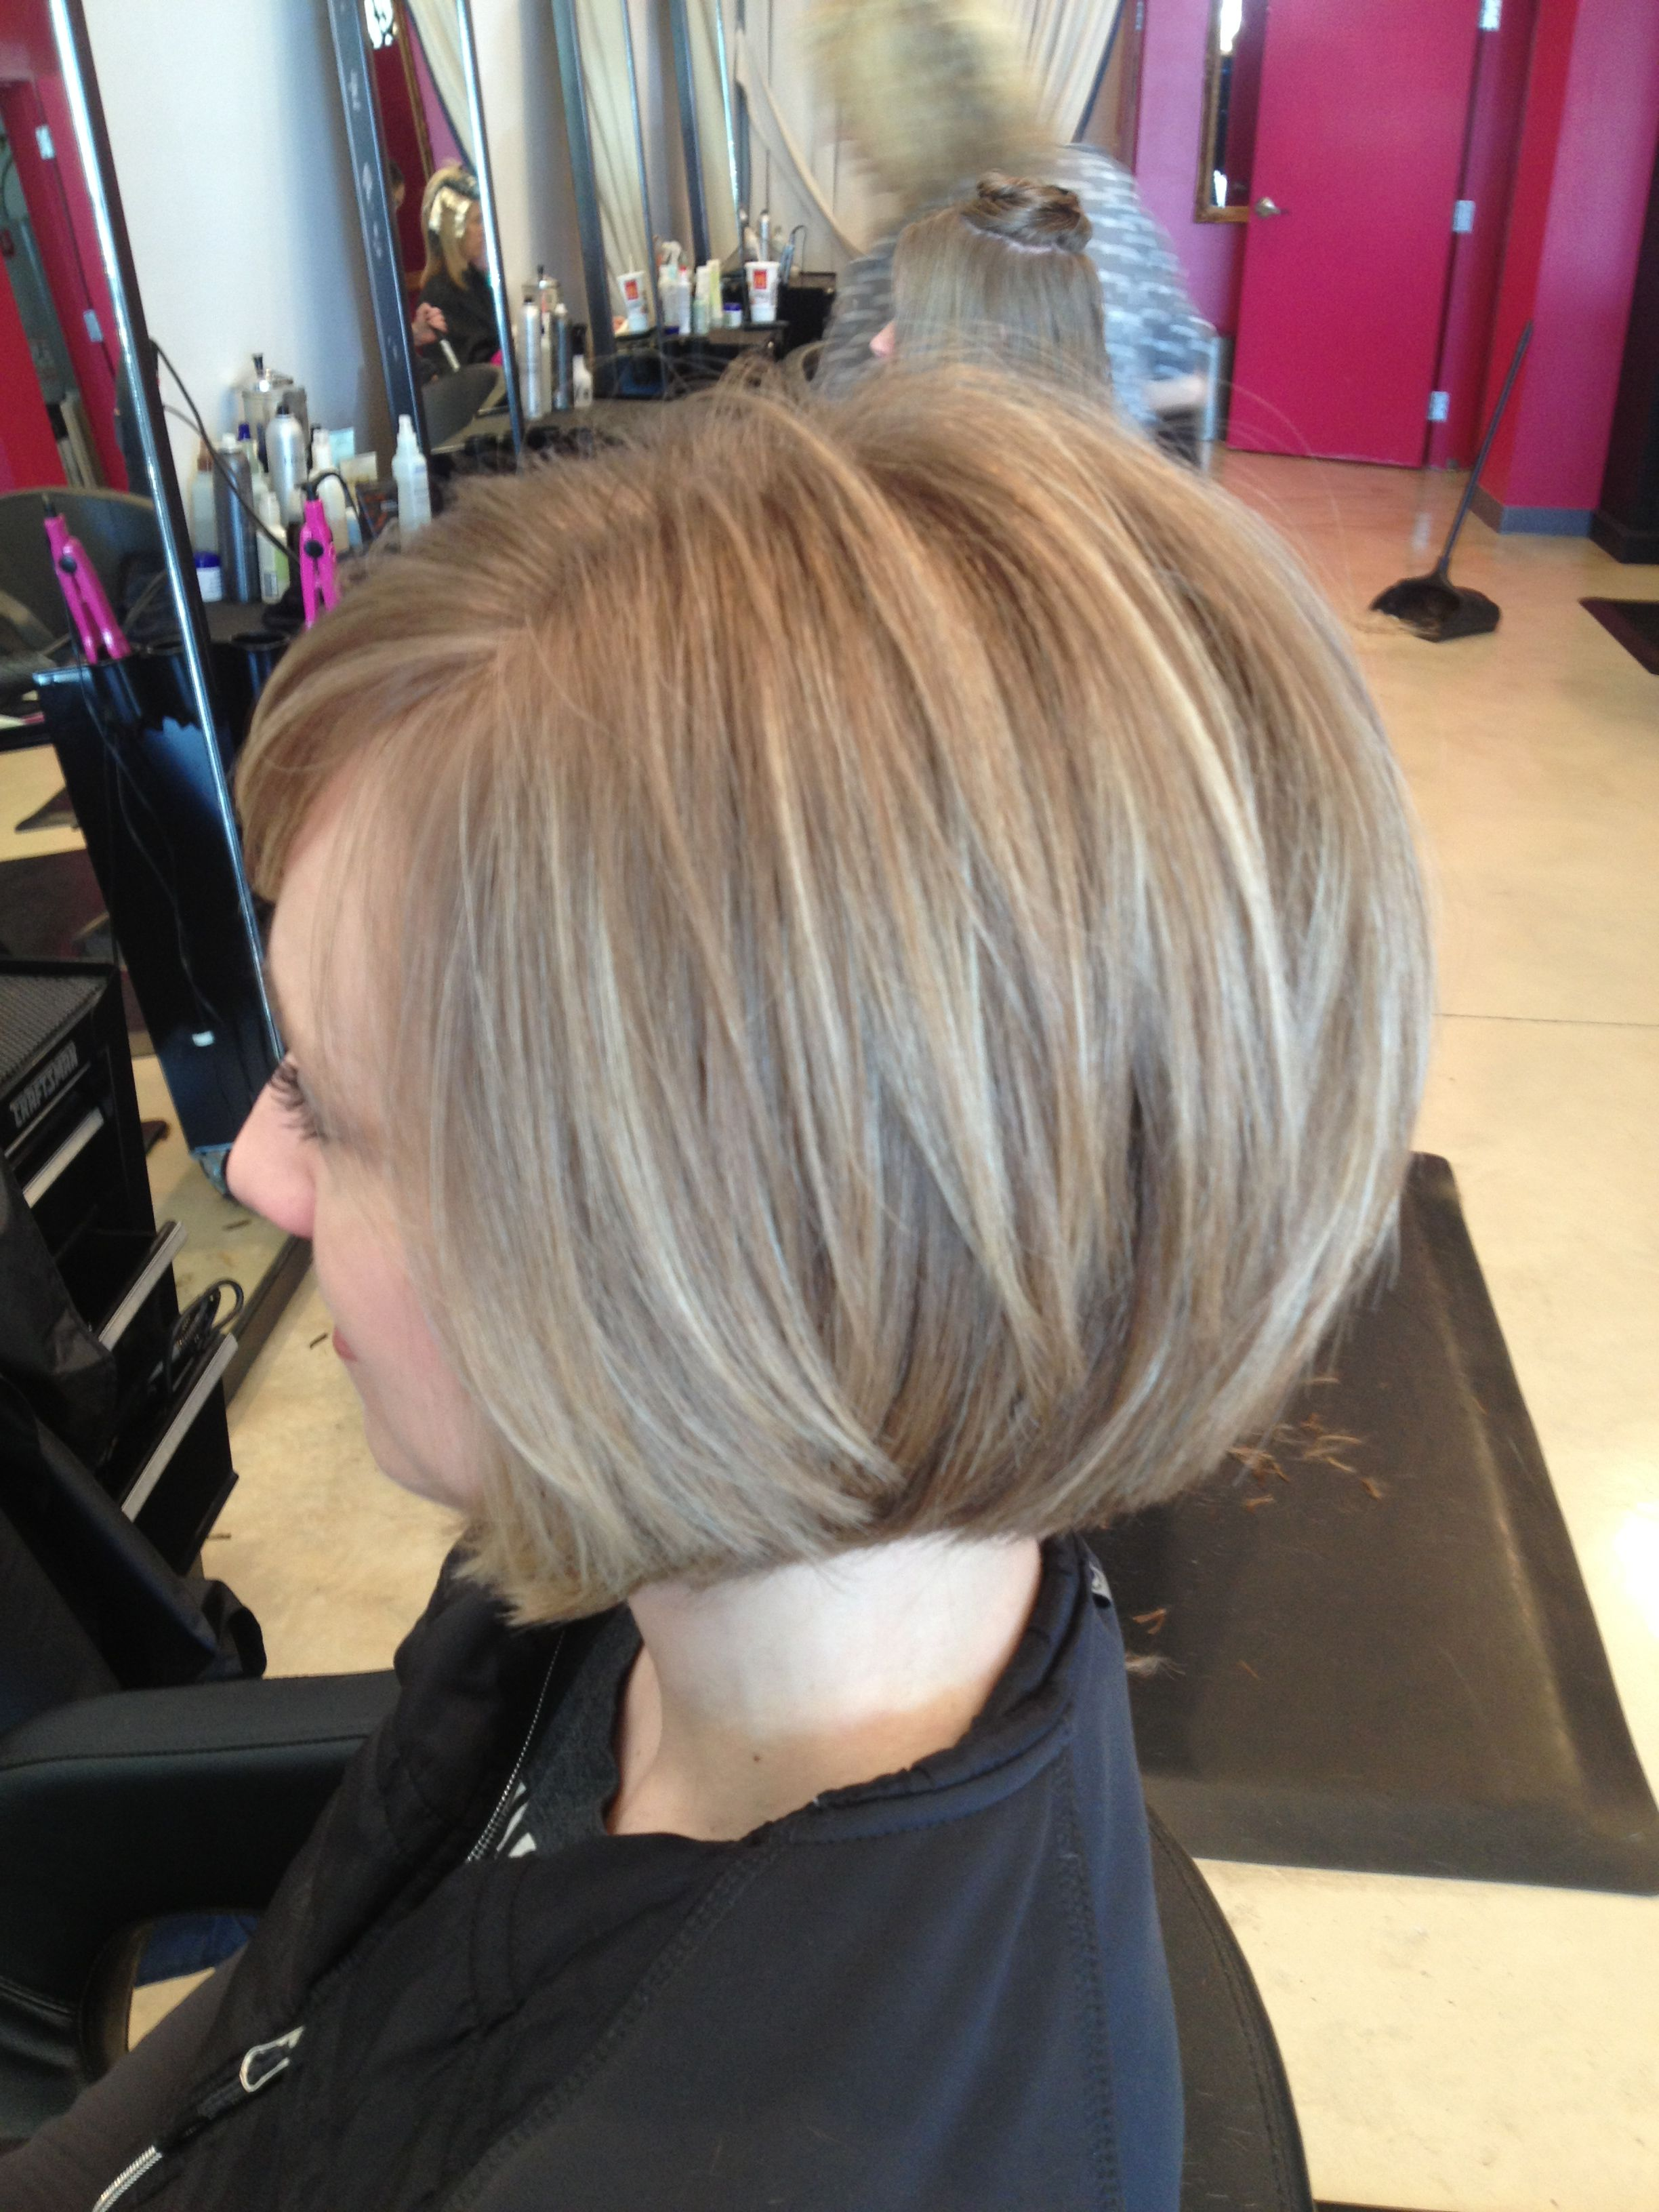 Pin By Kelly Harris Hurt On Short Hair Hair Styles Short Hair Styles Womens Hairstyles